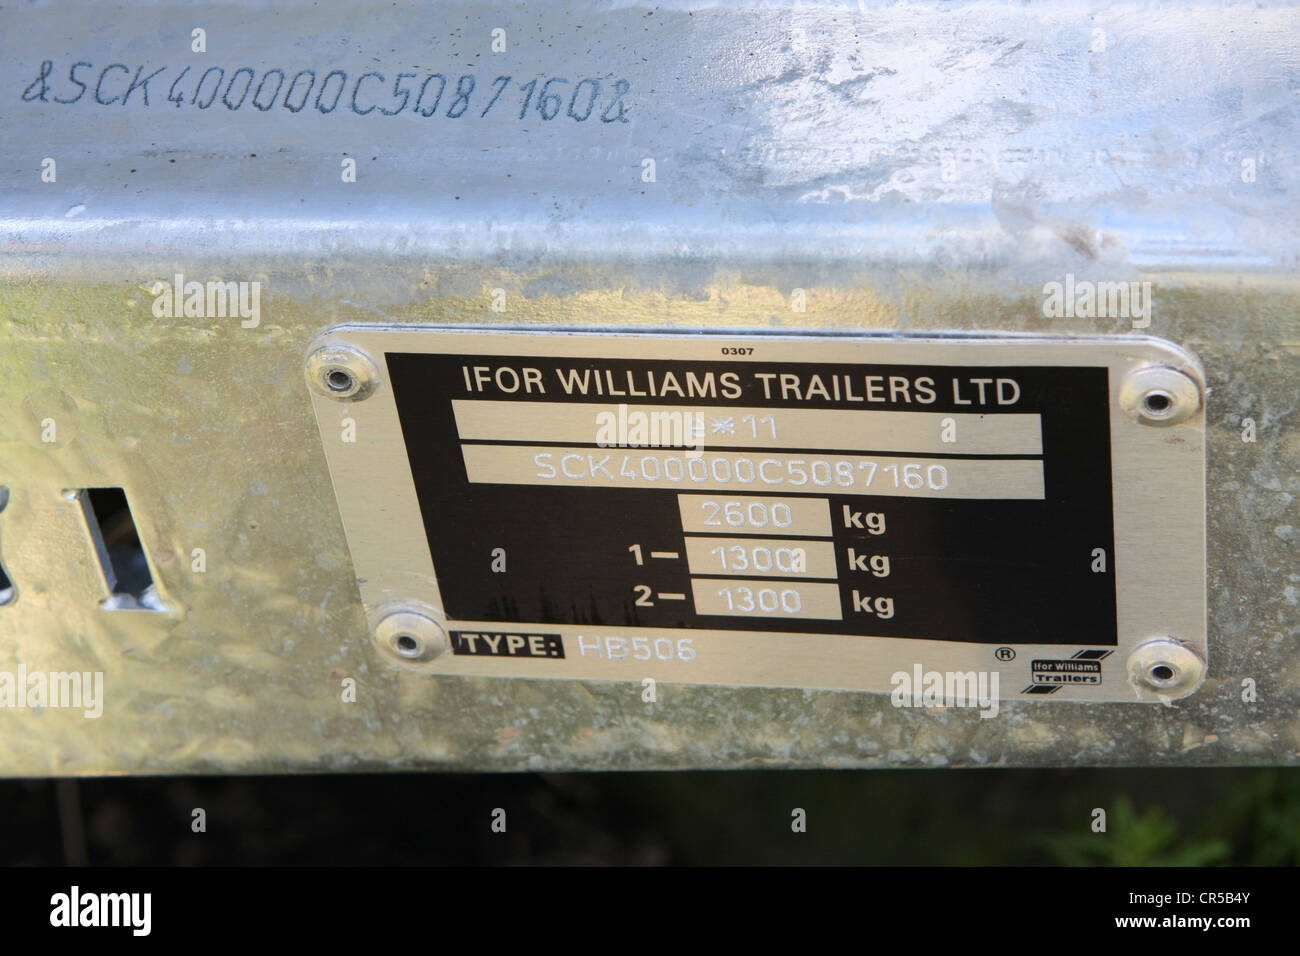 dating ifor williams trailers